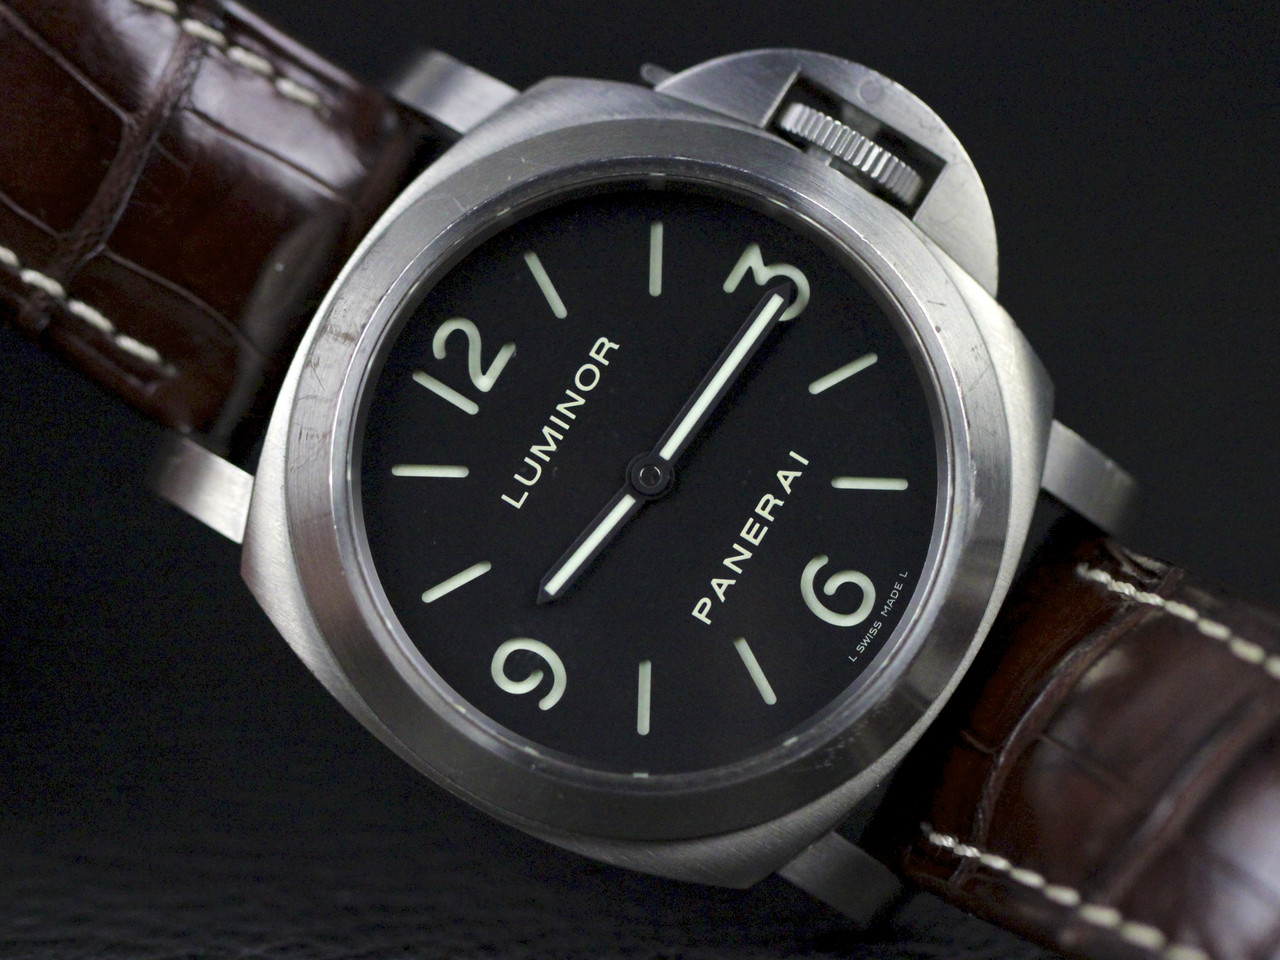 "Black ""Panerai sandwich"" dial with luminous green hour markers - Pre-owned Panerai Watch - Luminor Base PAM00176 Titanium available for sale Legend of Time - Chicago Watch Center"